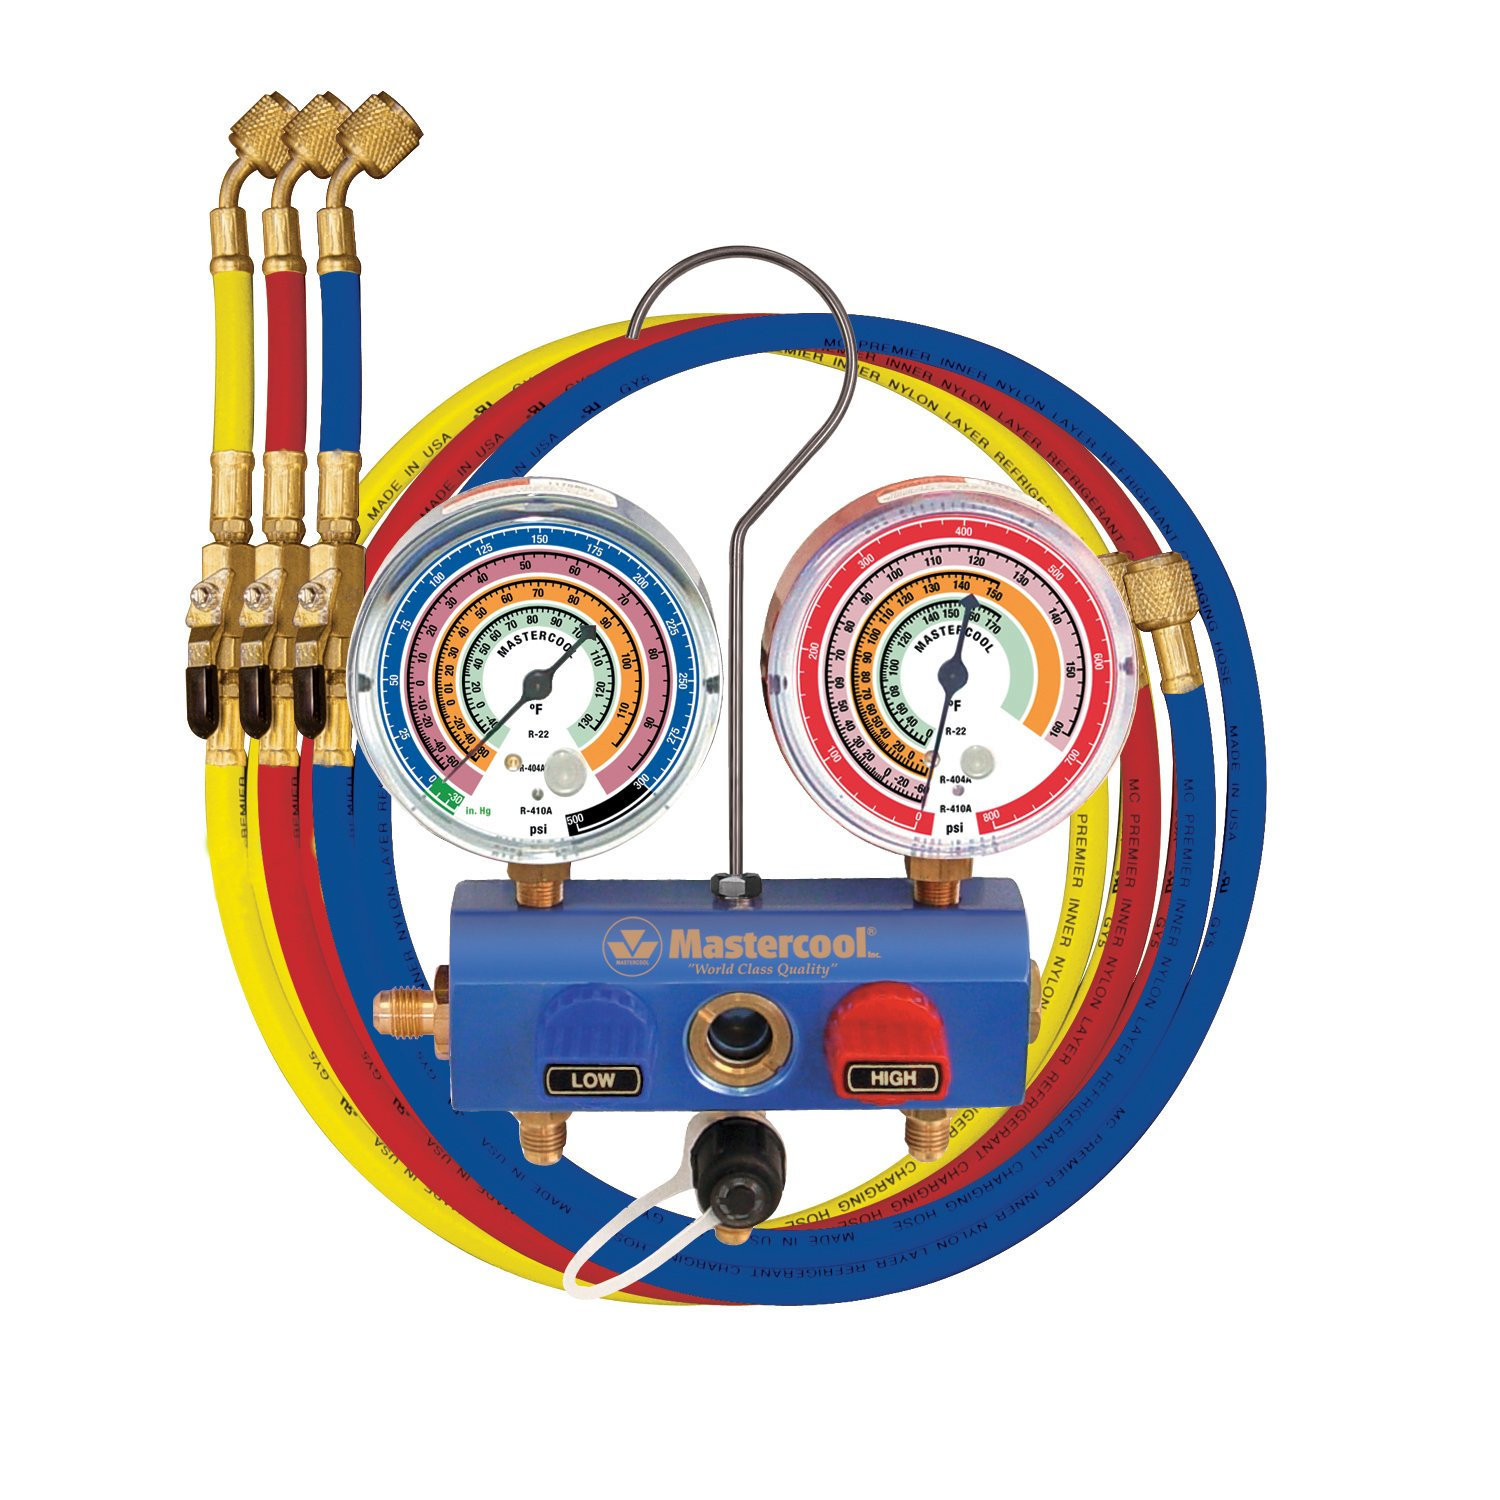 59661 R22 R404A 2-Way Manifold Set with 3-1//8 Gauges and 60 Hoses Blue R410A Mastercool